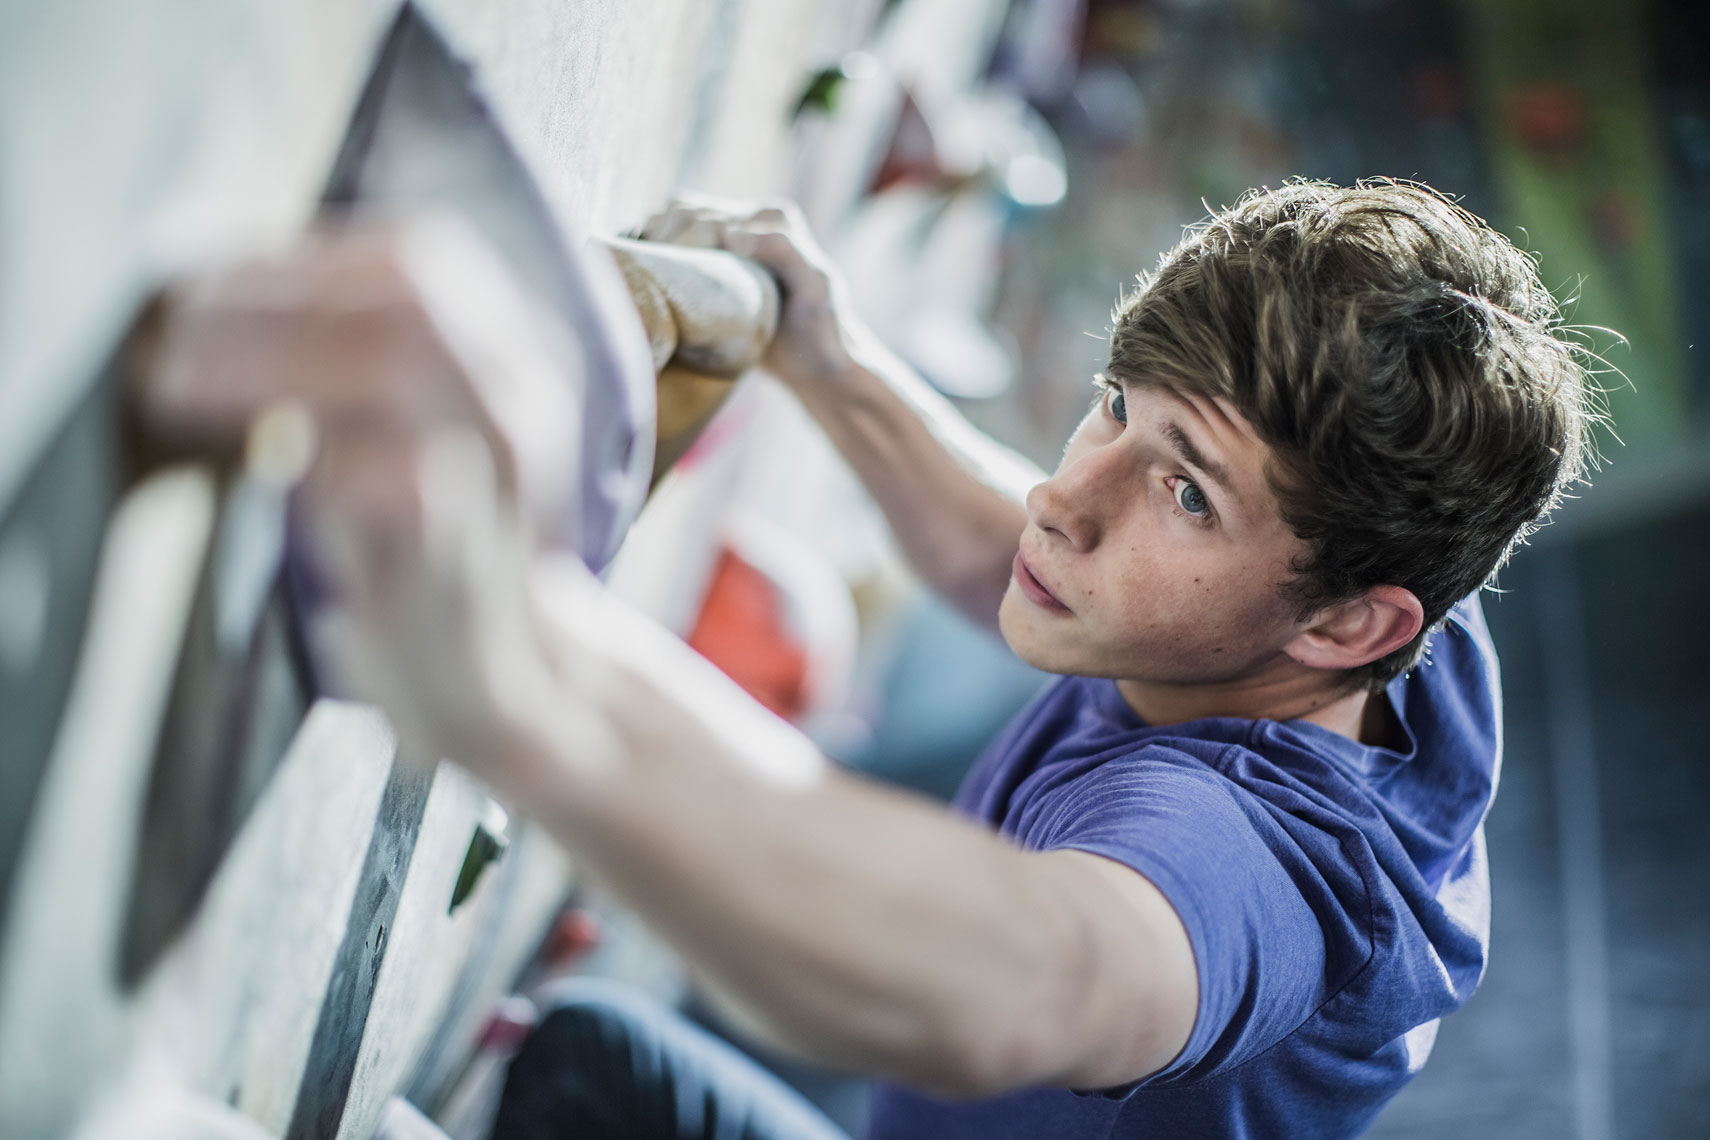 Man climbing at a climbing gym. | John Fedele Lifestyle Photography